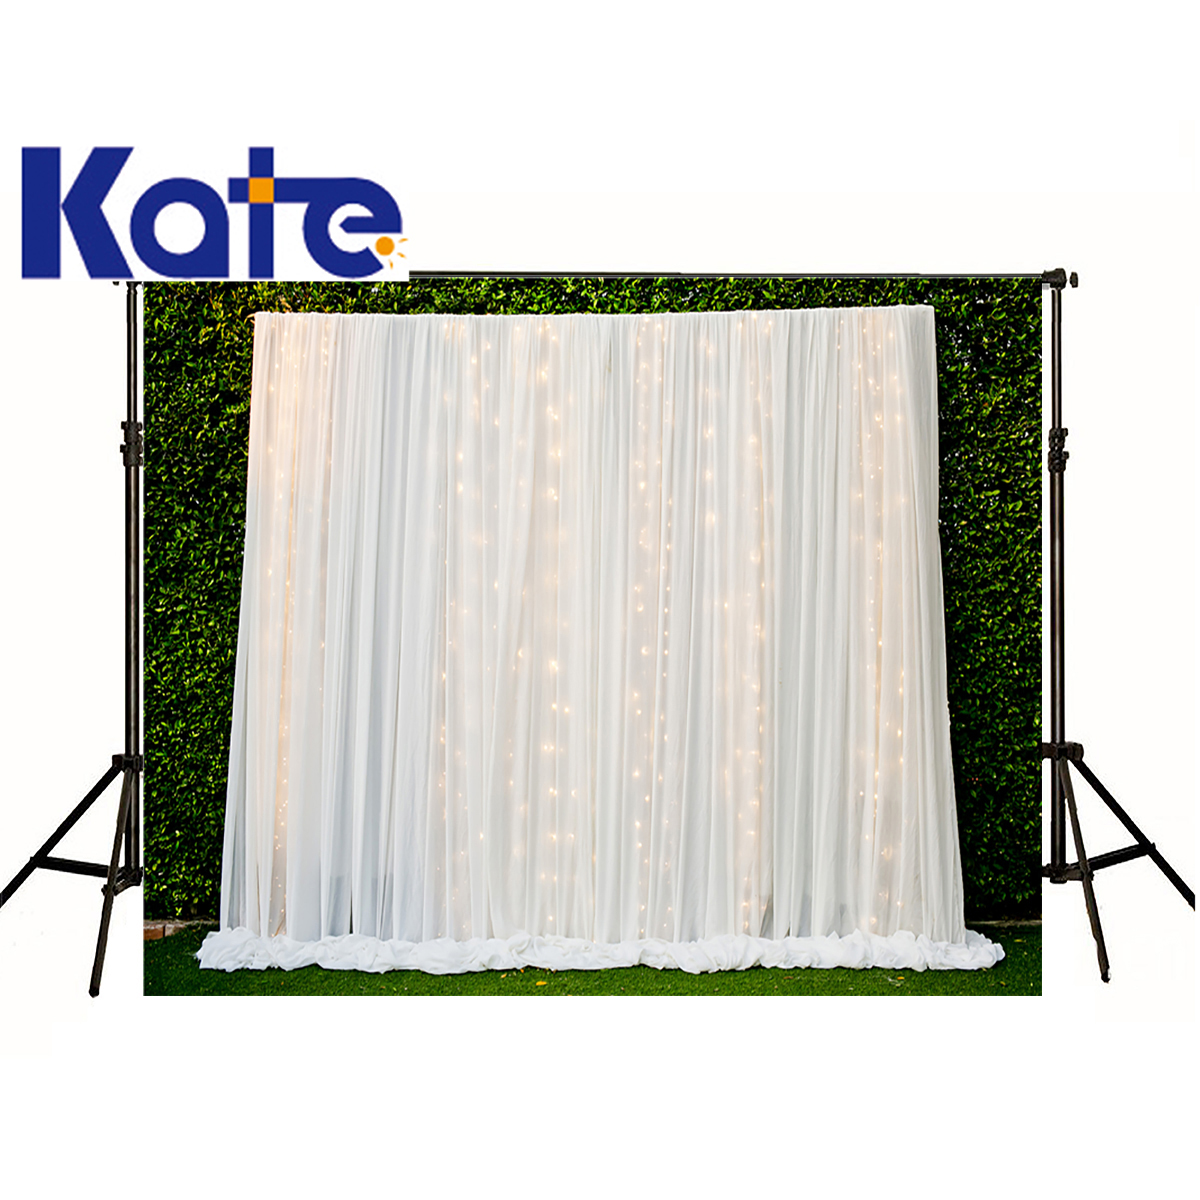 kate Photographic background Green plant white mesh lace golden stage lighting No creases Can be washed newborn christmas 8x12ft no name afm 1045a 3х9 м green white